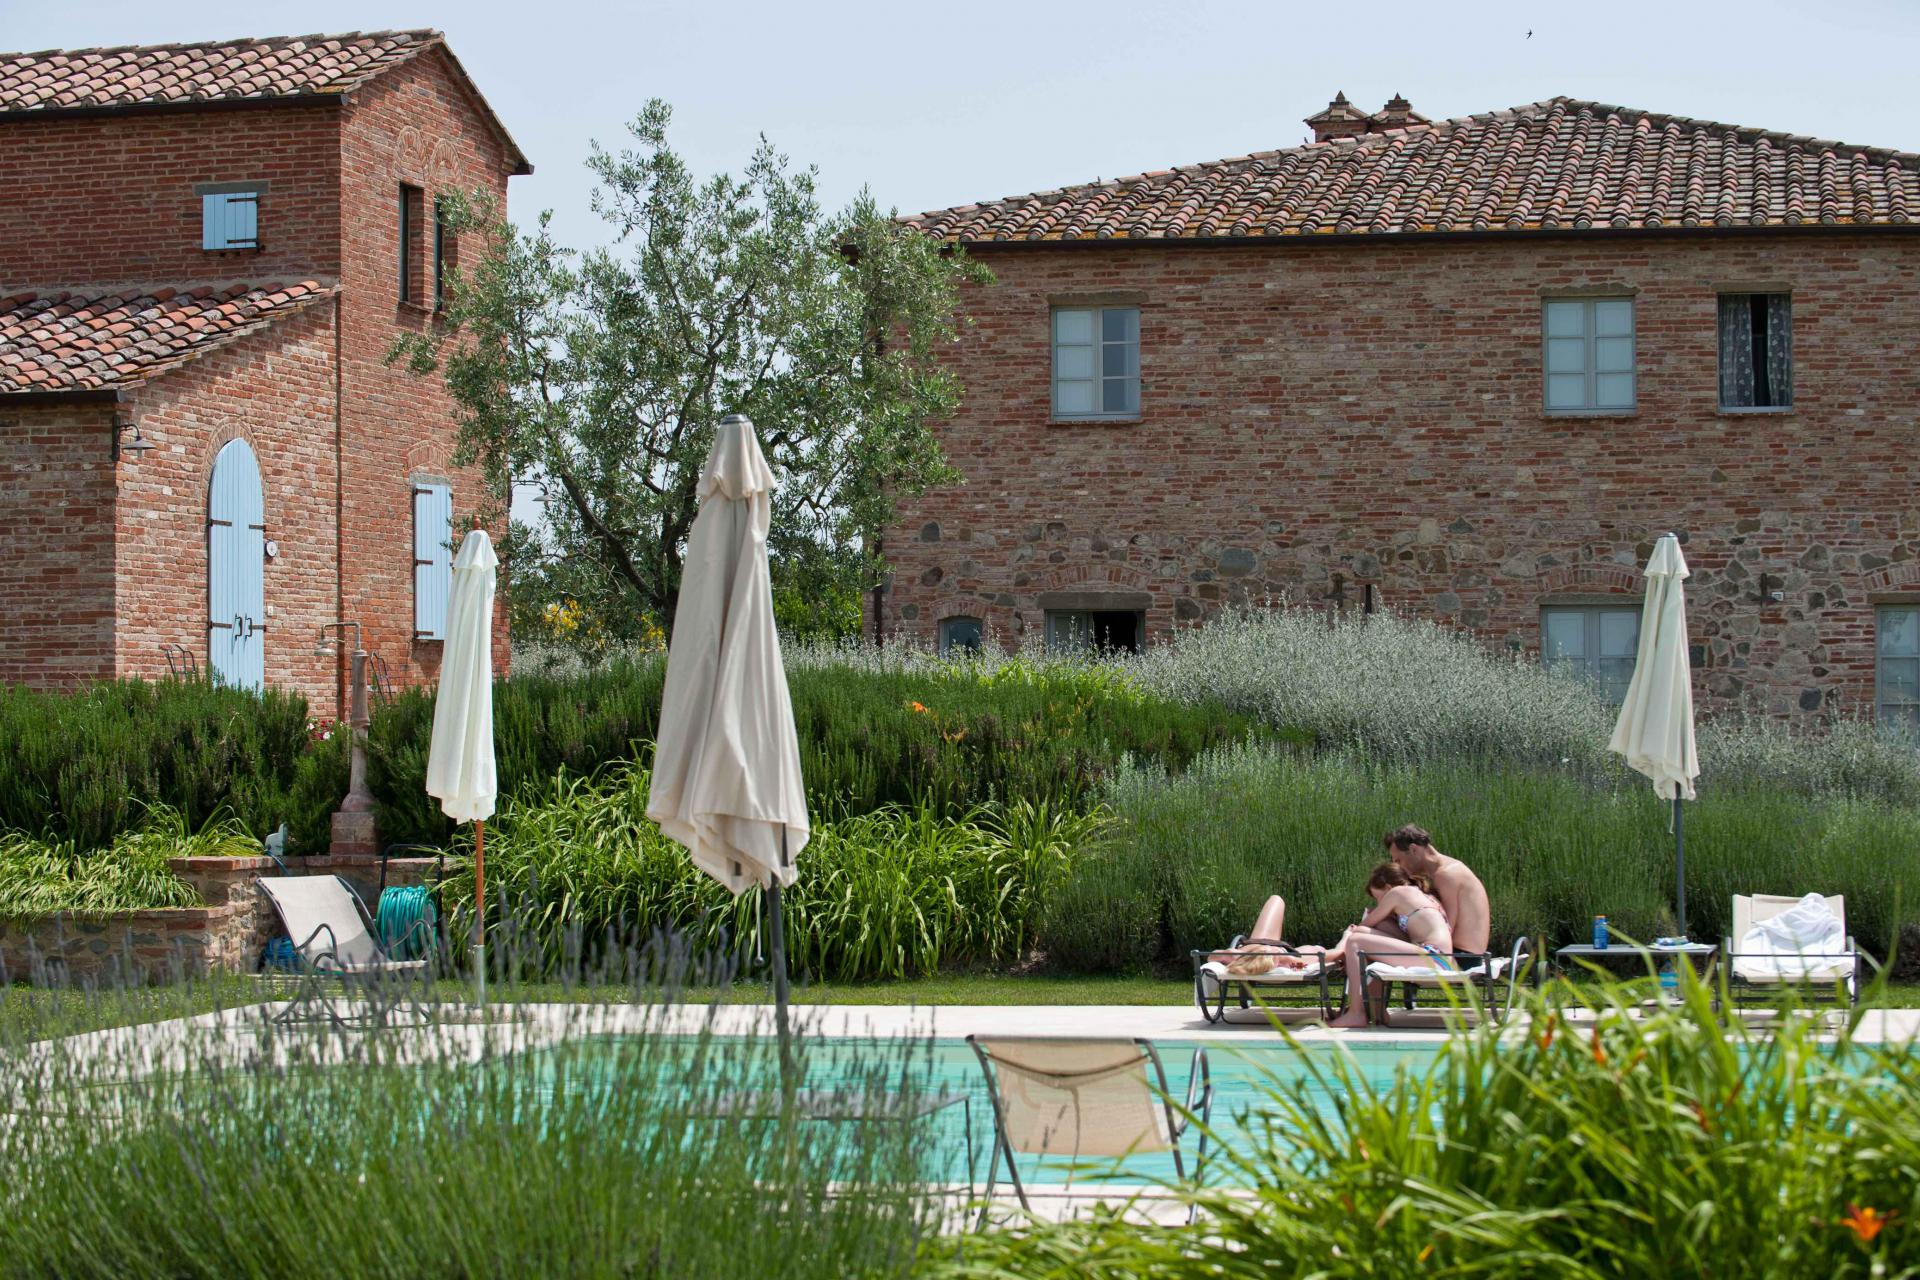 Agriturismo Umbria Agriturismo in Assisi in Umbria with charming interior